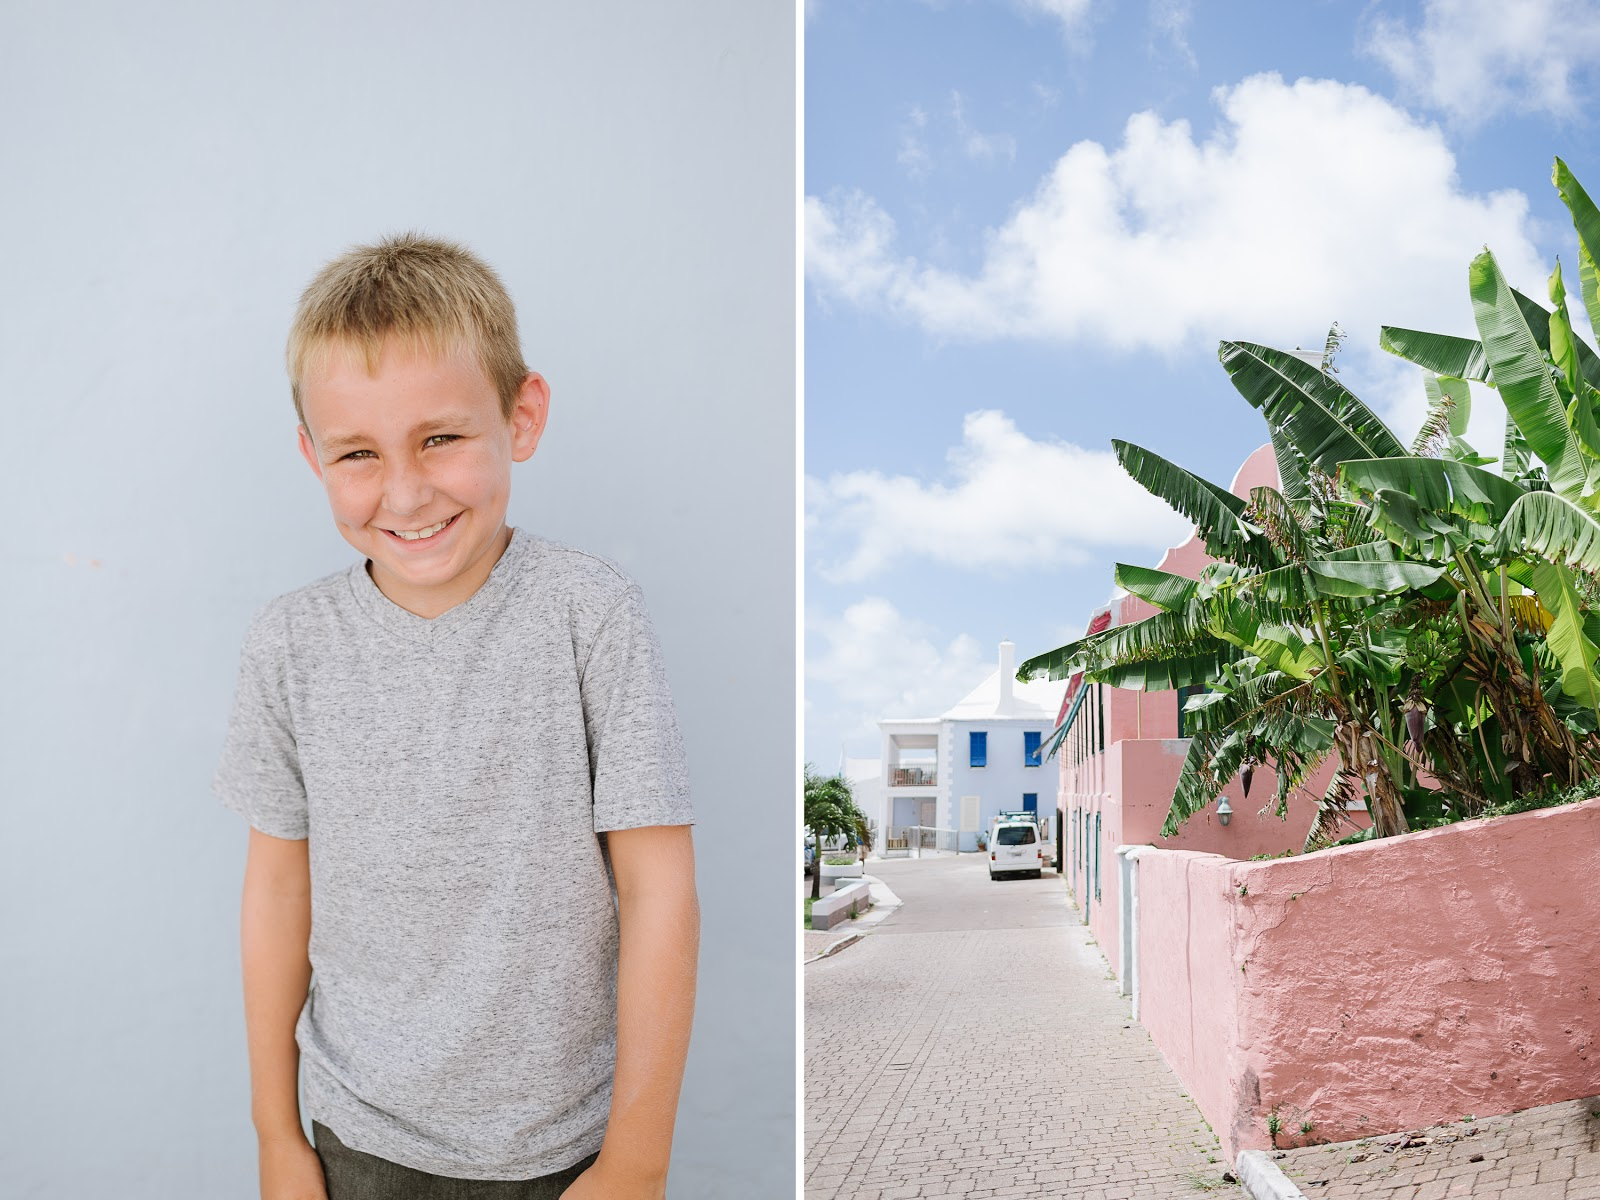 Bermuda-family portraits-vacation-2016-bermudas-photography-travel-travel blogger-beautyosaurus lex-Alex Good-island-St. George Bermuda